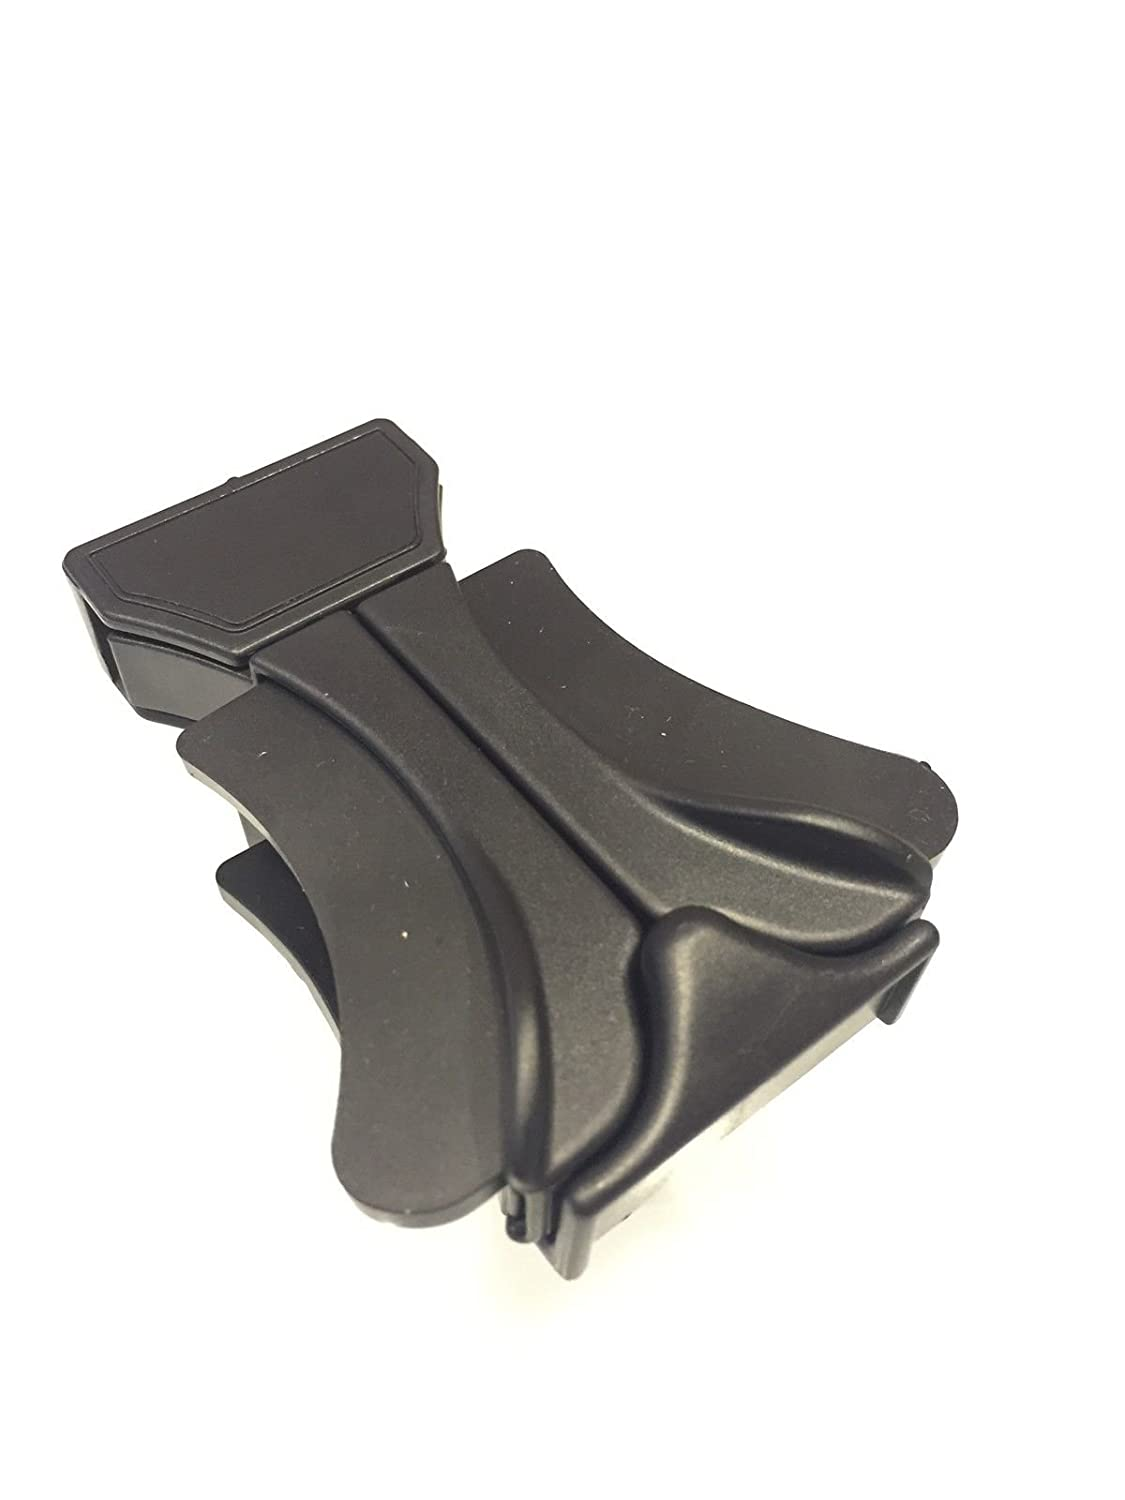 TrunkNets Center Console Cup Holder Insert Divider for Lexus LX470 LX 470 2000 01 02 03 04 05 06 2007 New Trunknets Inc 4350407721